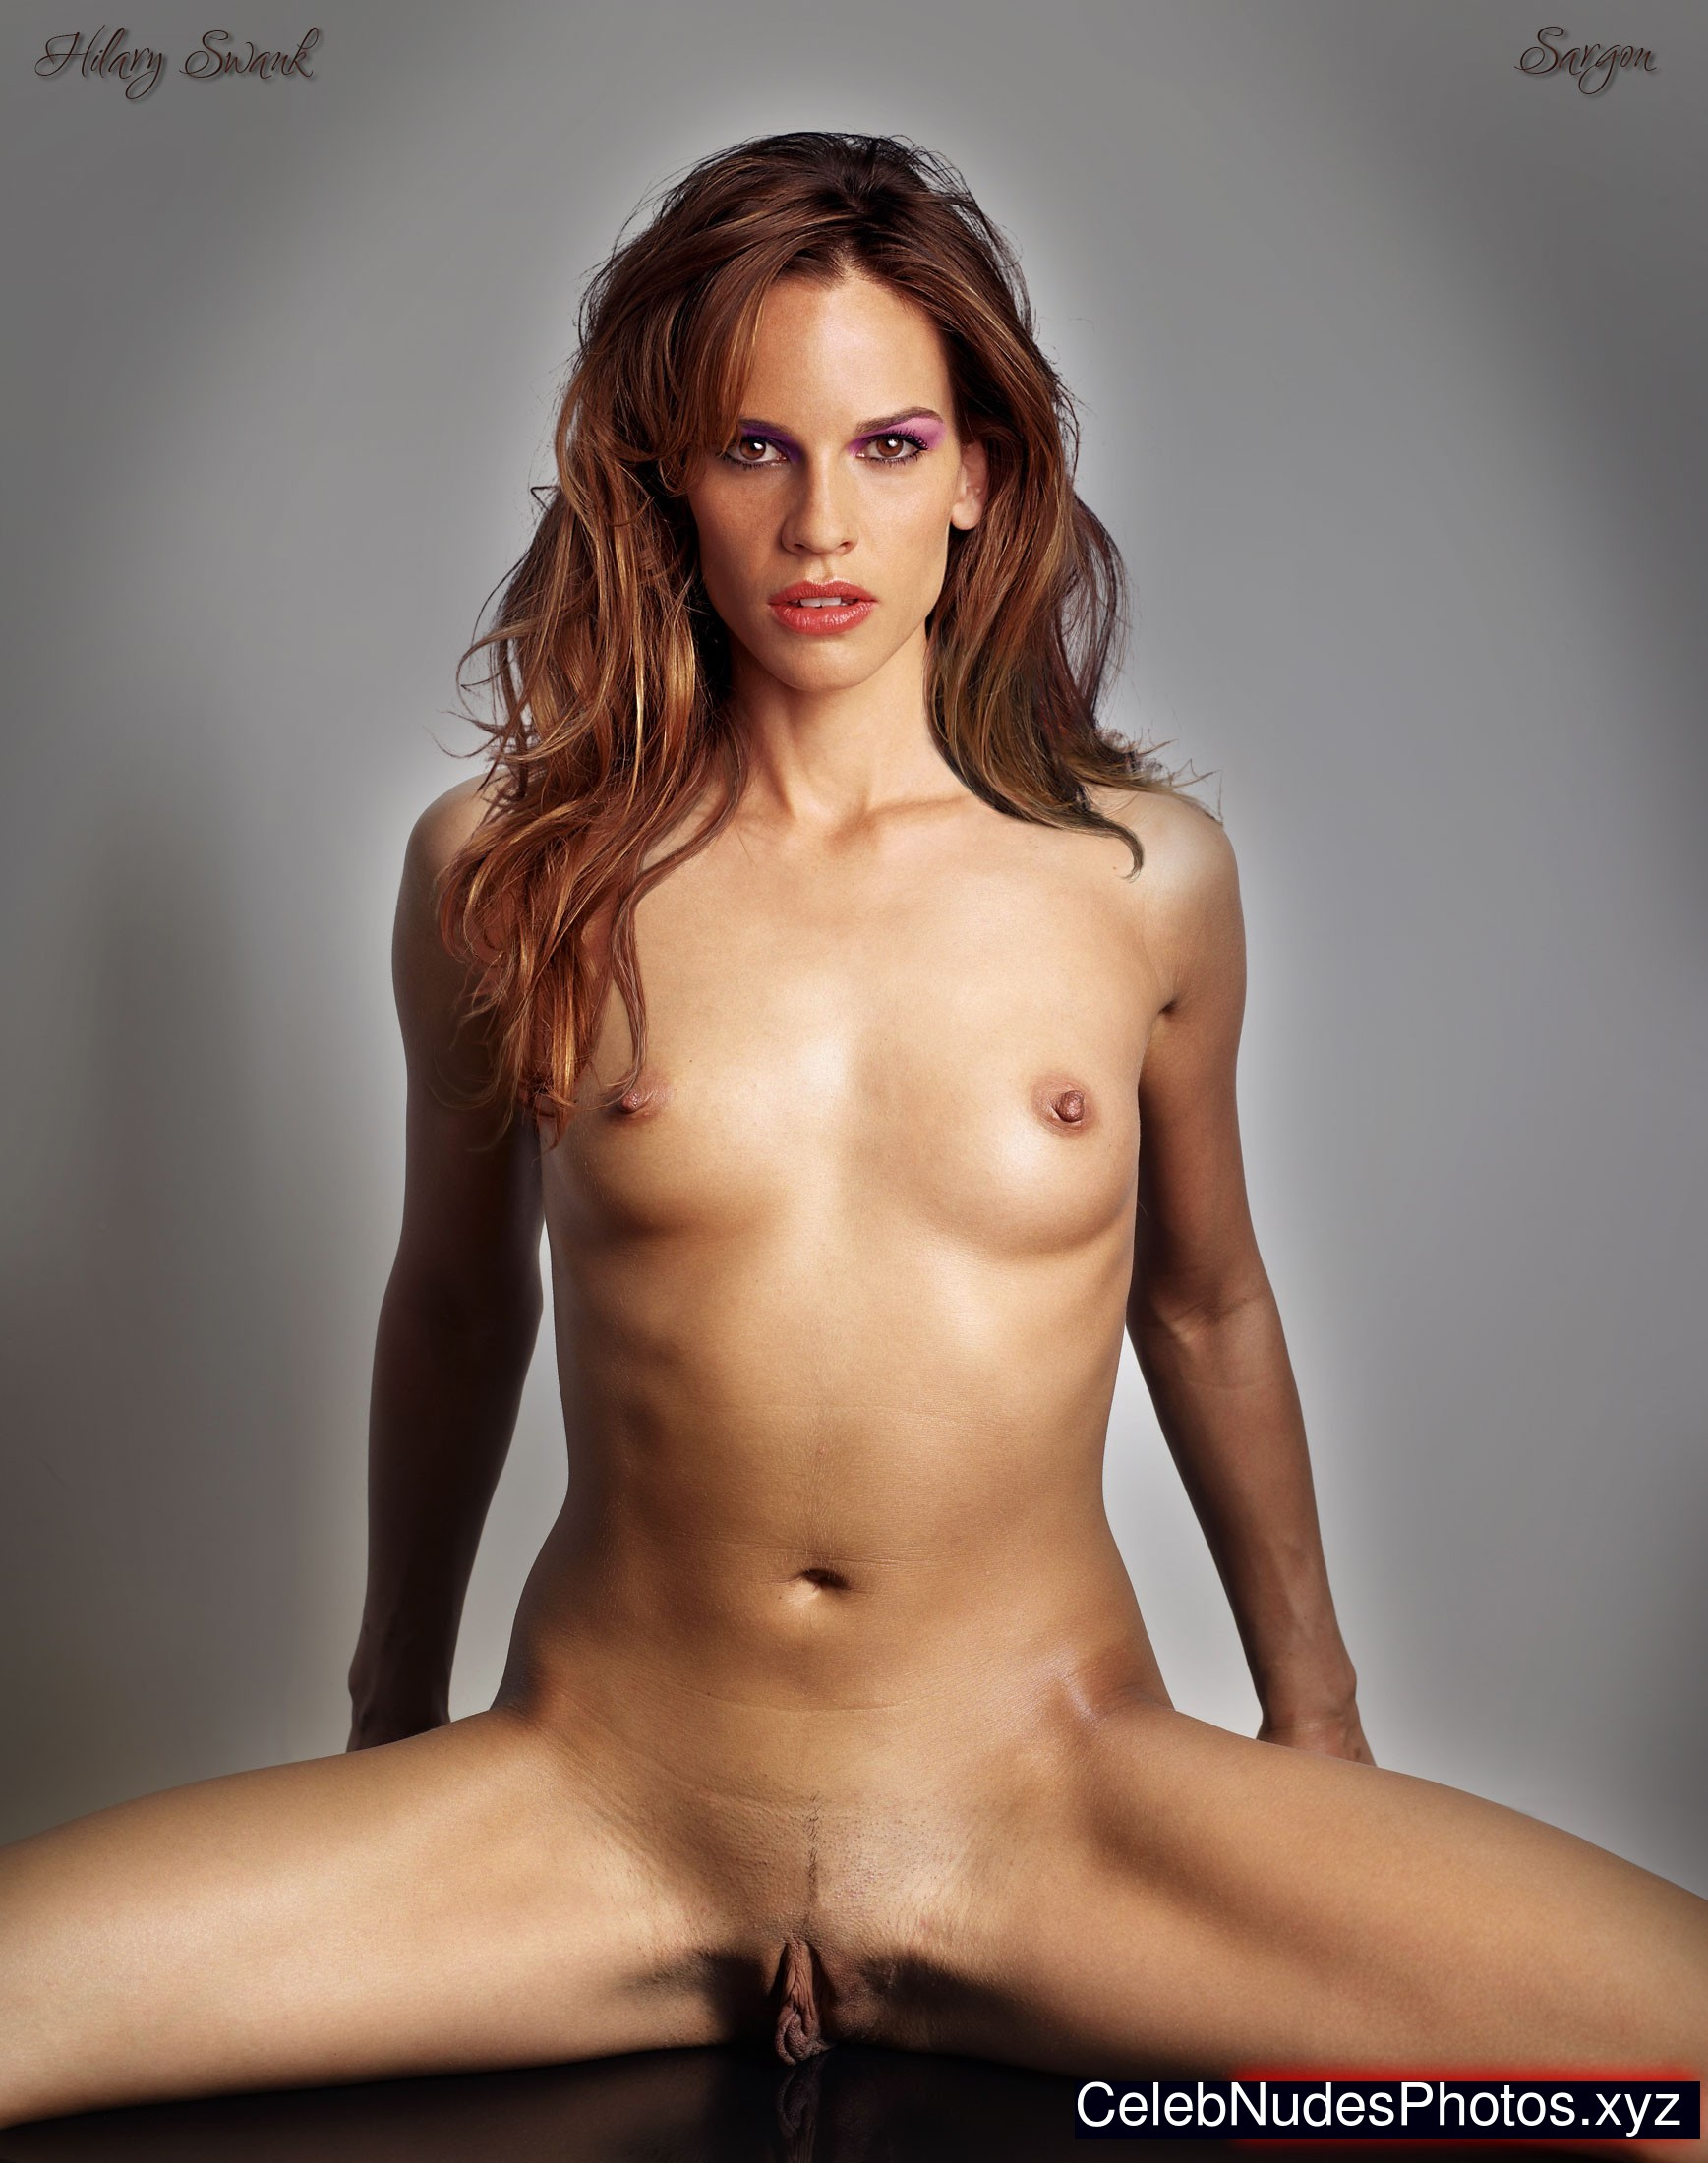 Conversations! sorry, Hot hilary swank nude apologise